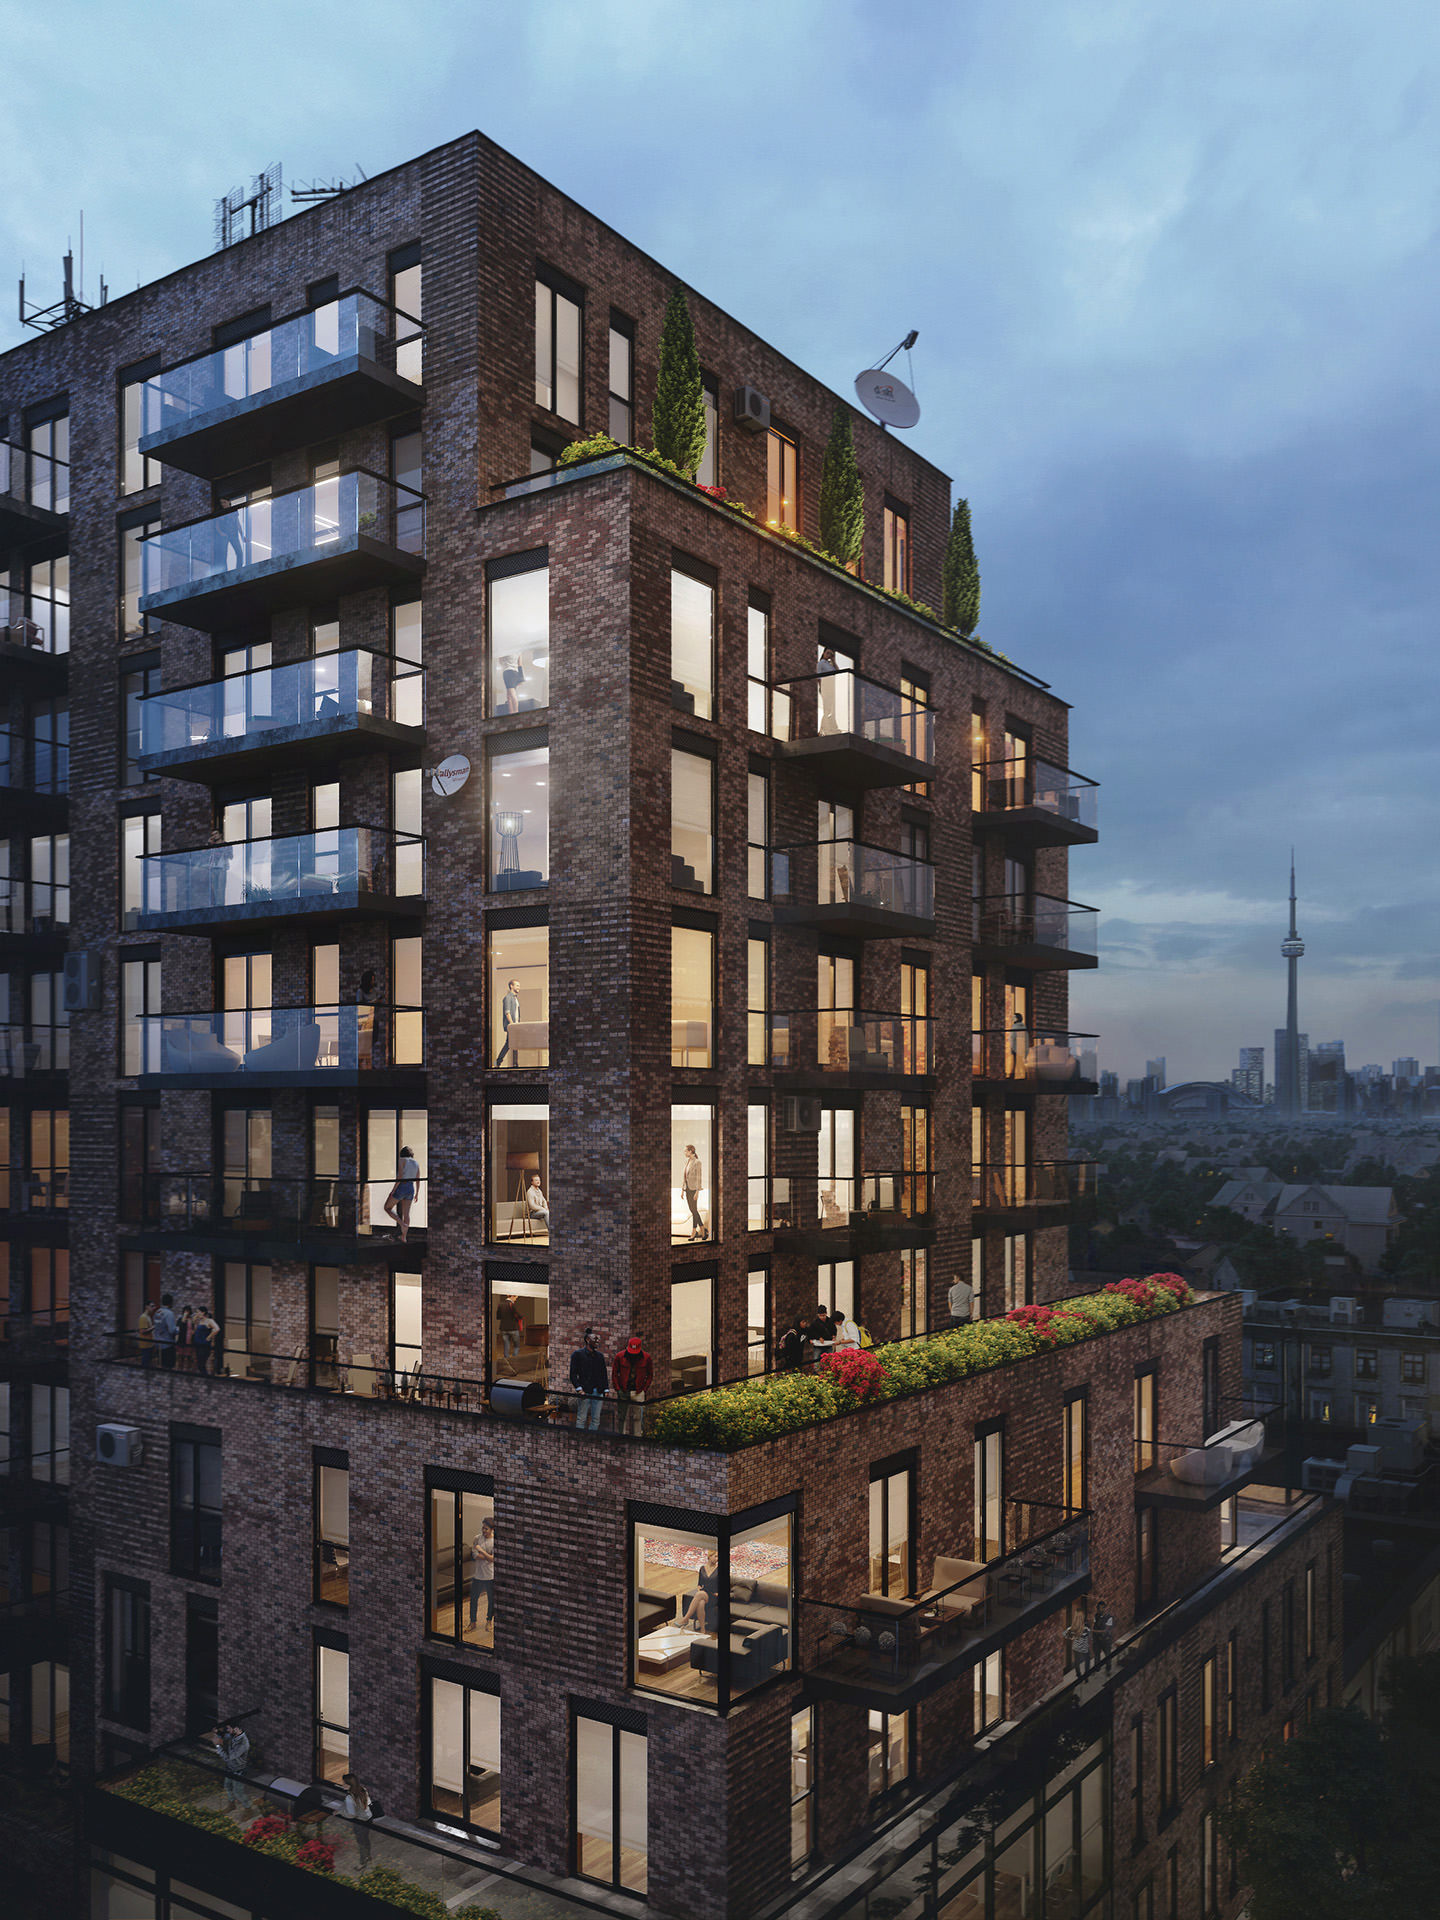 Photorealistic architectural rendering of a residential brick building with people standing on terraces and balconies in the evening light